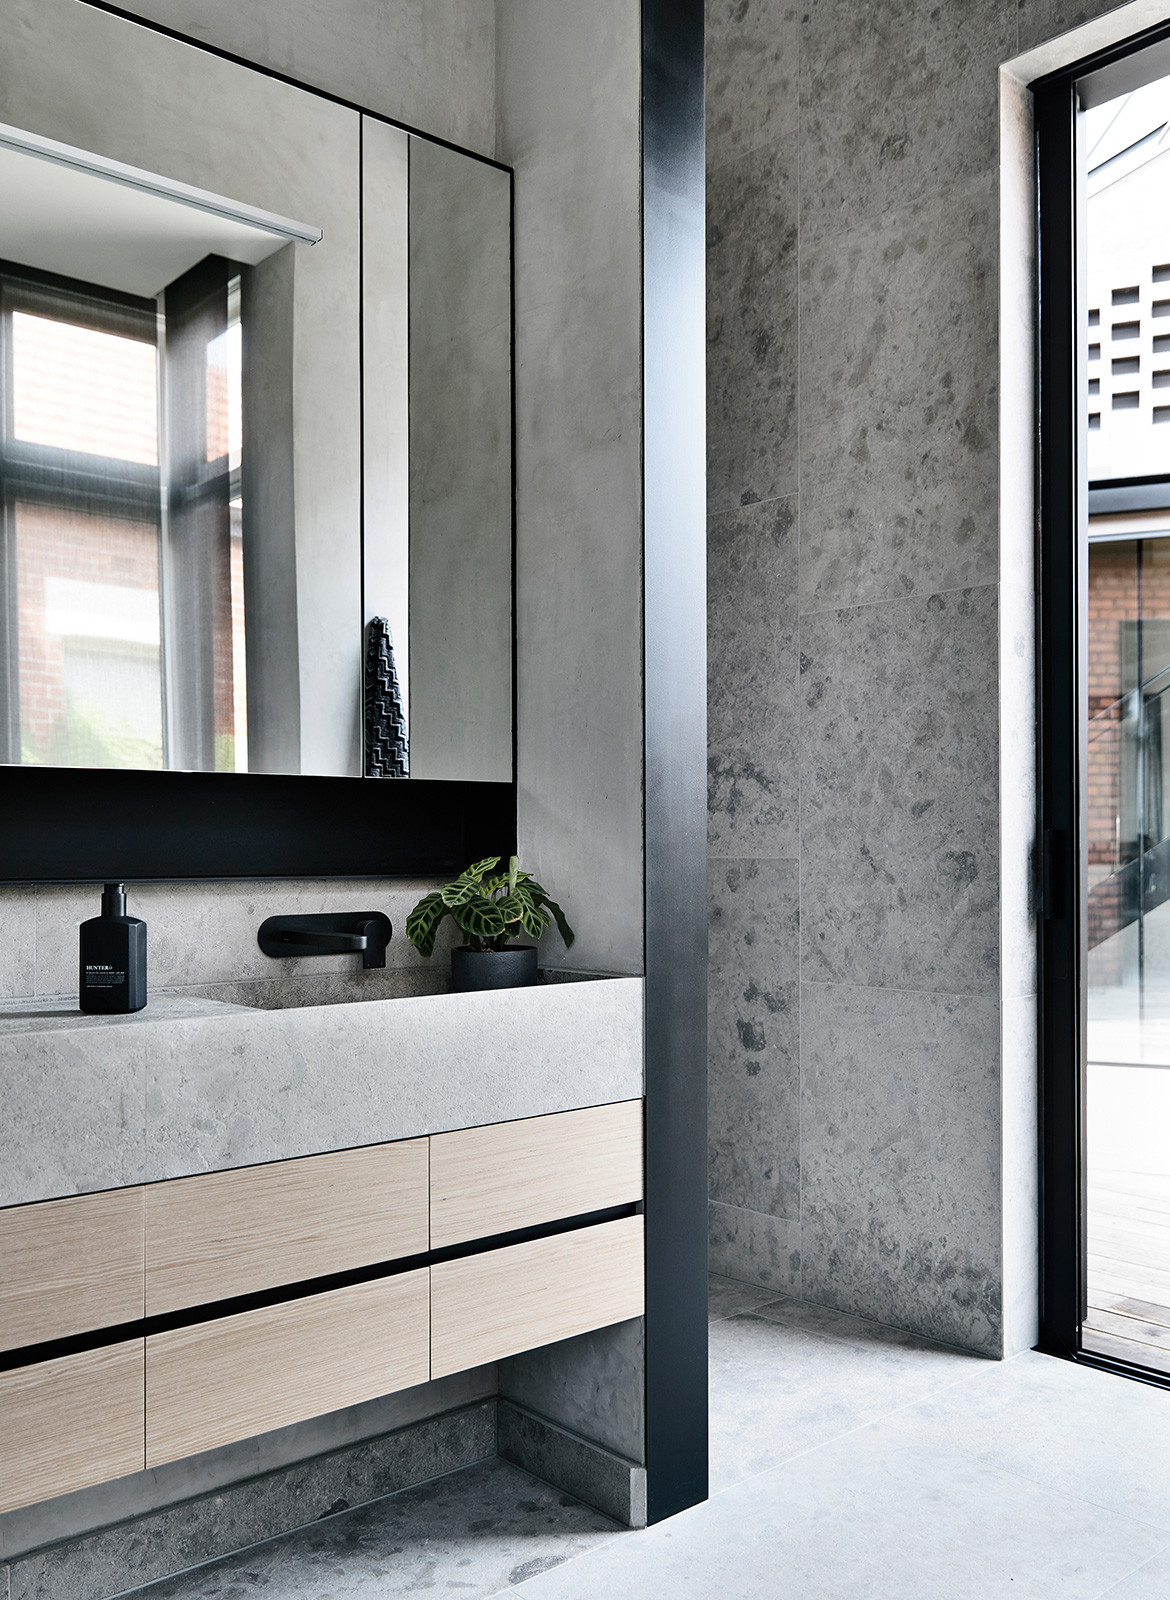 York Street Jackson Clements Burrows Architects CC Derek Swalwell bathroom